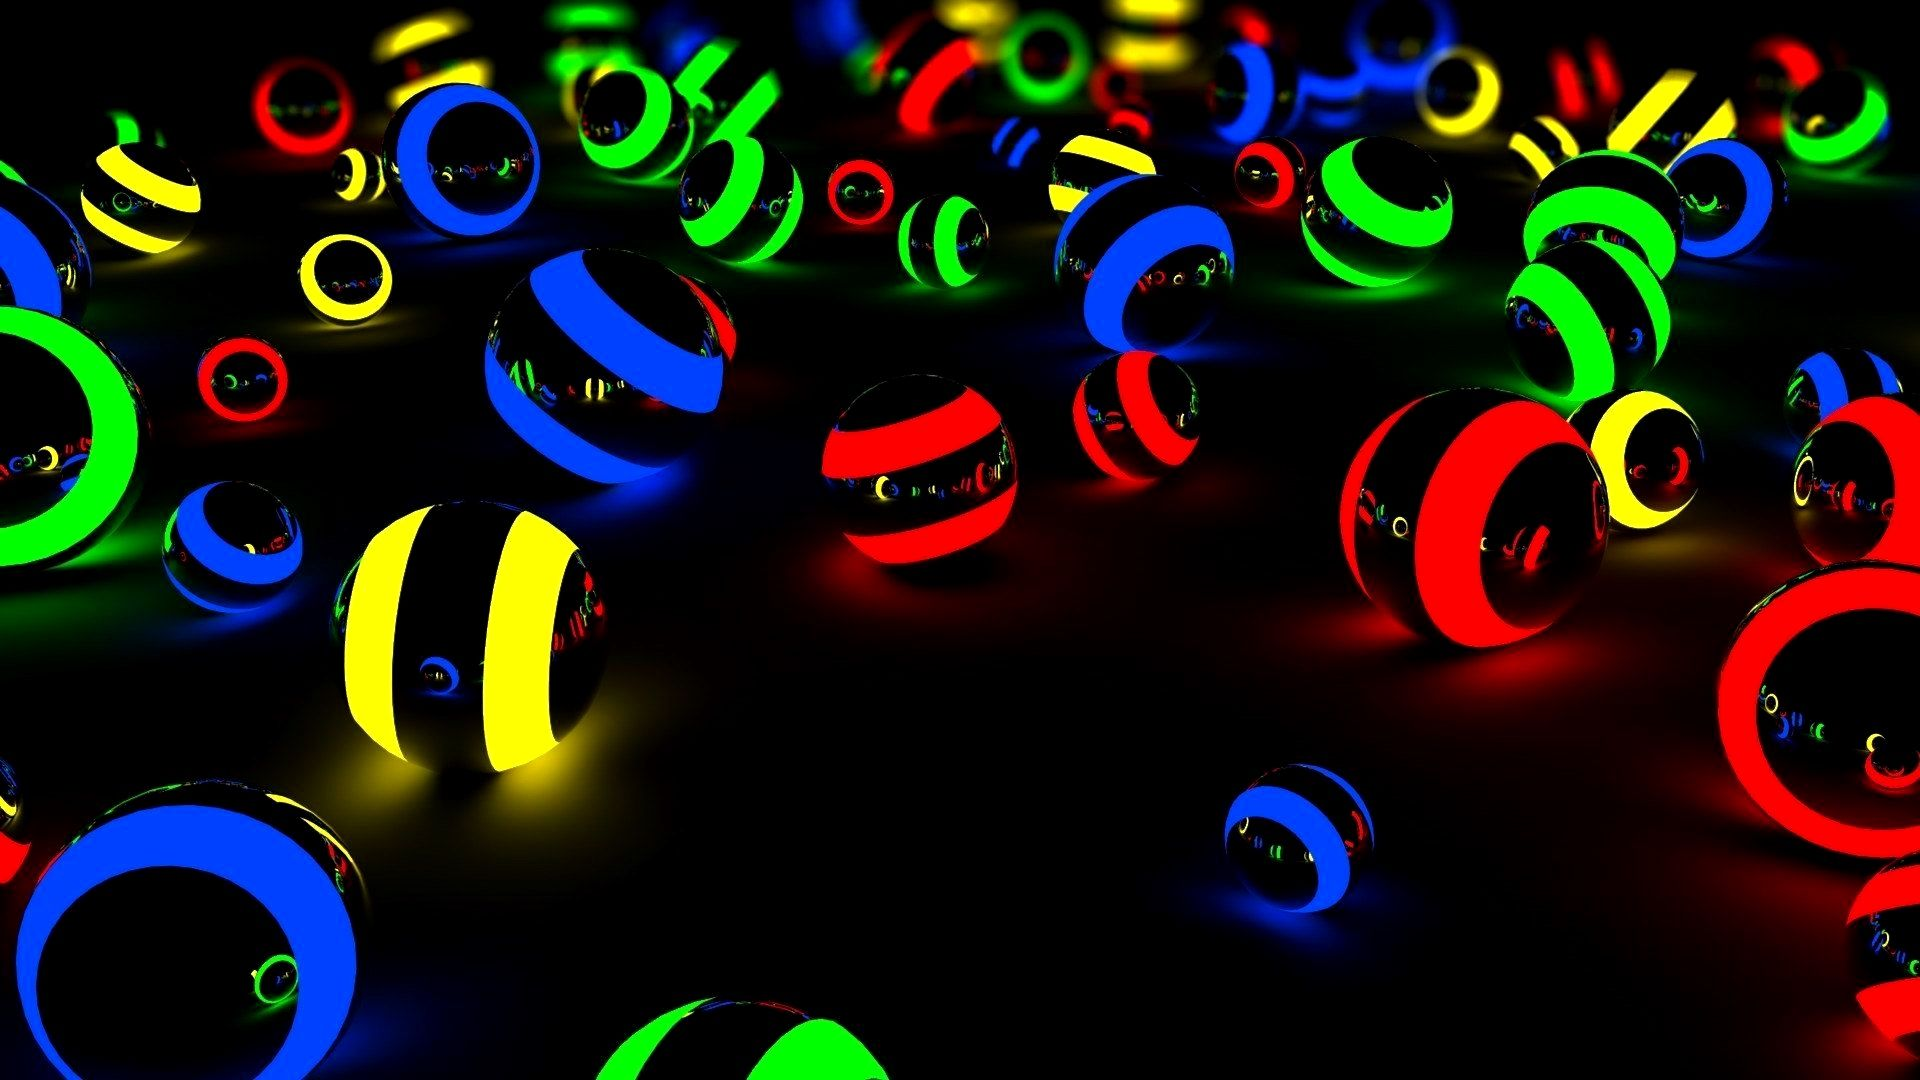 Neon Wallpaper 4k Pc Gallery Neon Wallpaper Neon Backgrounds Abstract Wallpaper